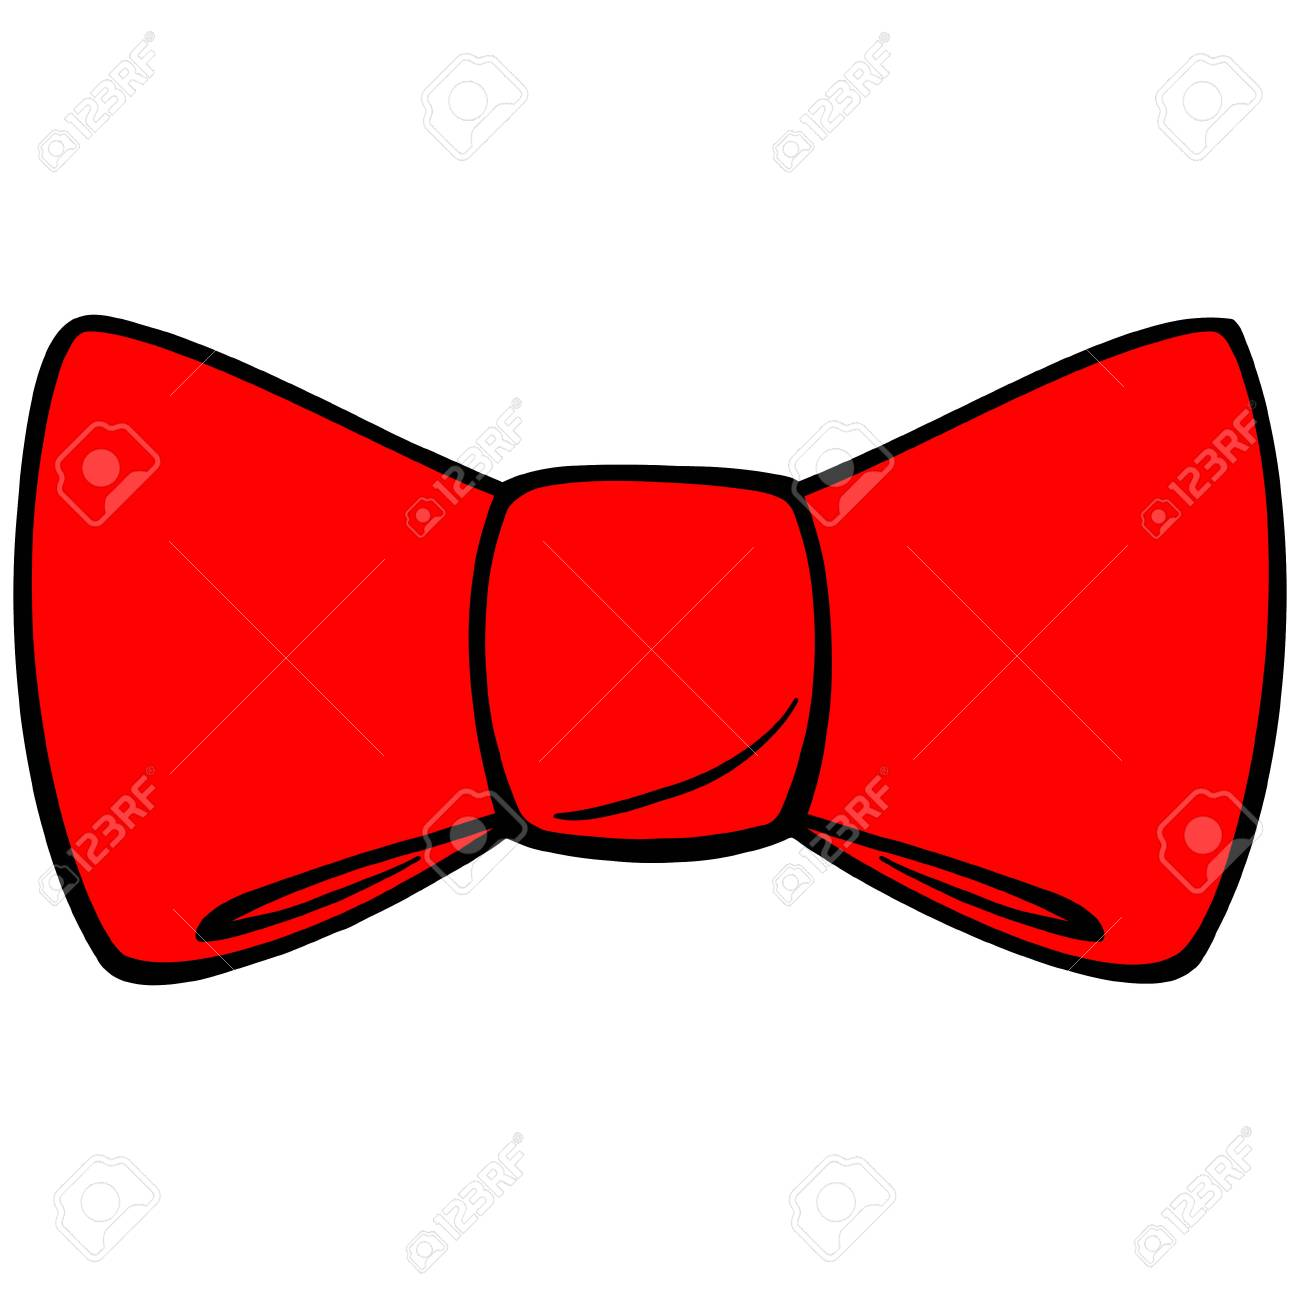 Red Bow Tie.